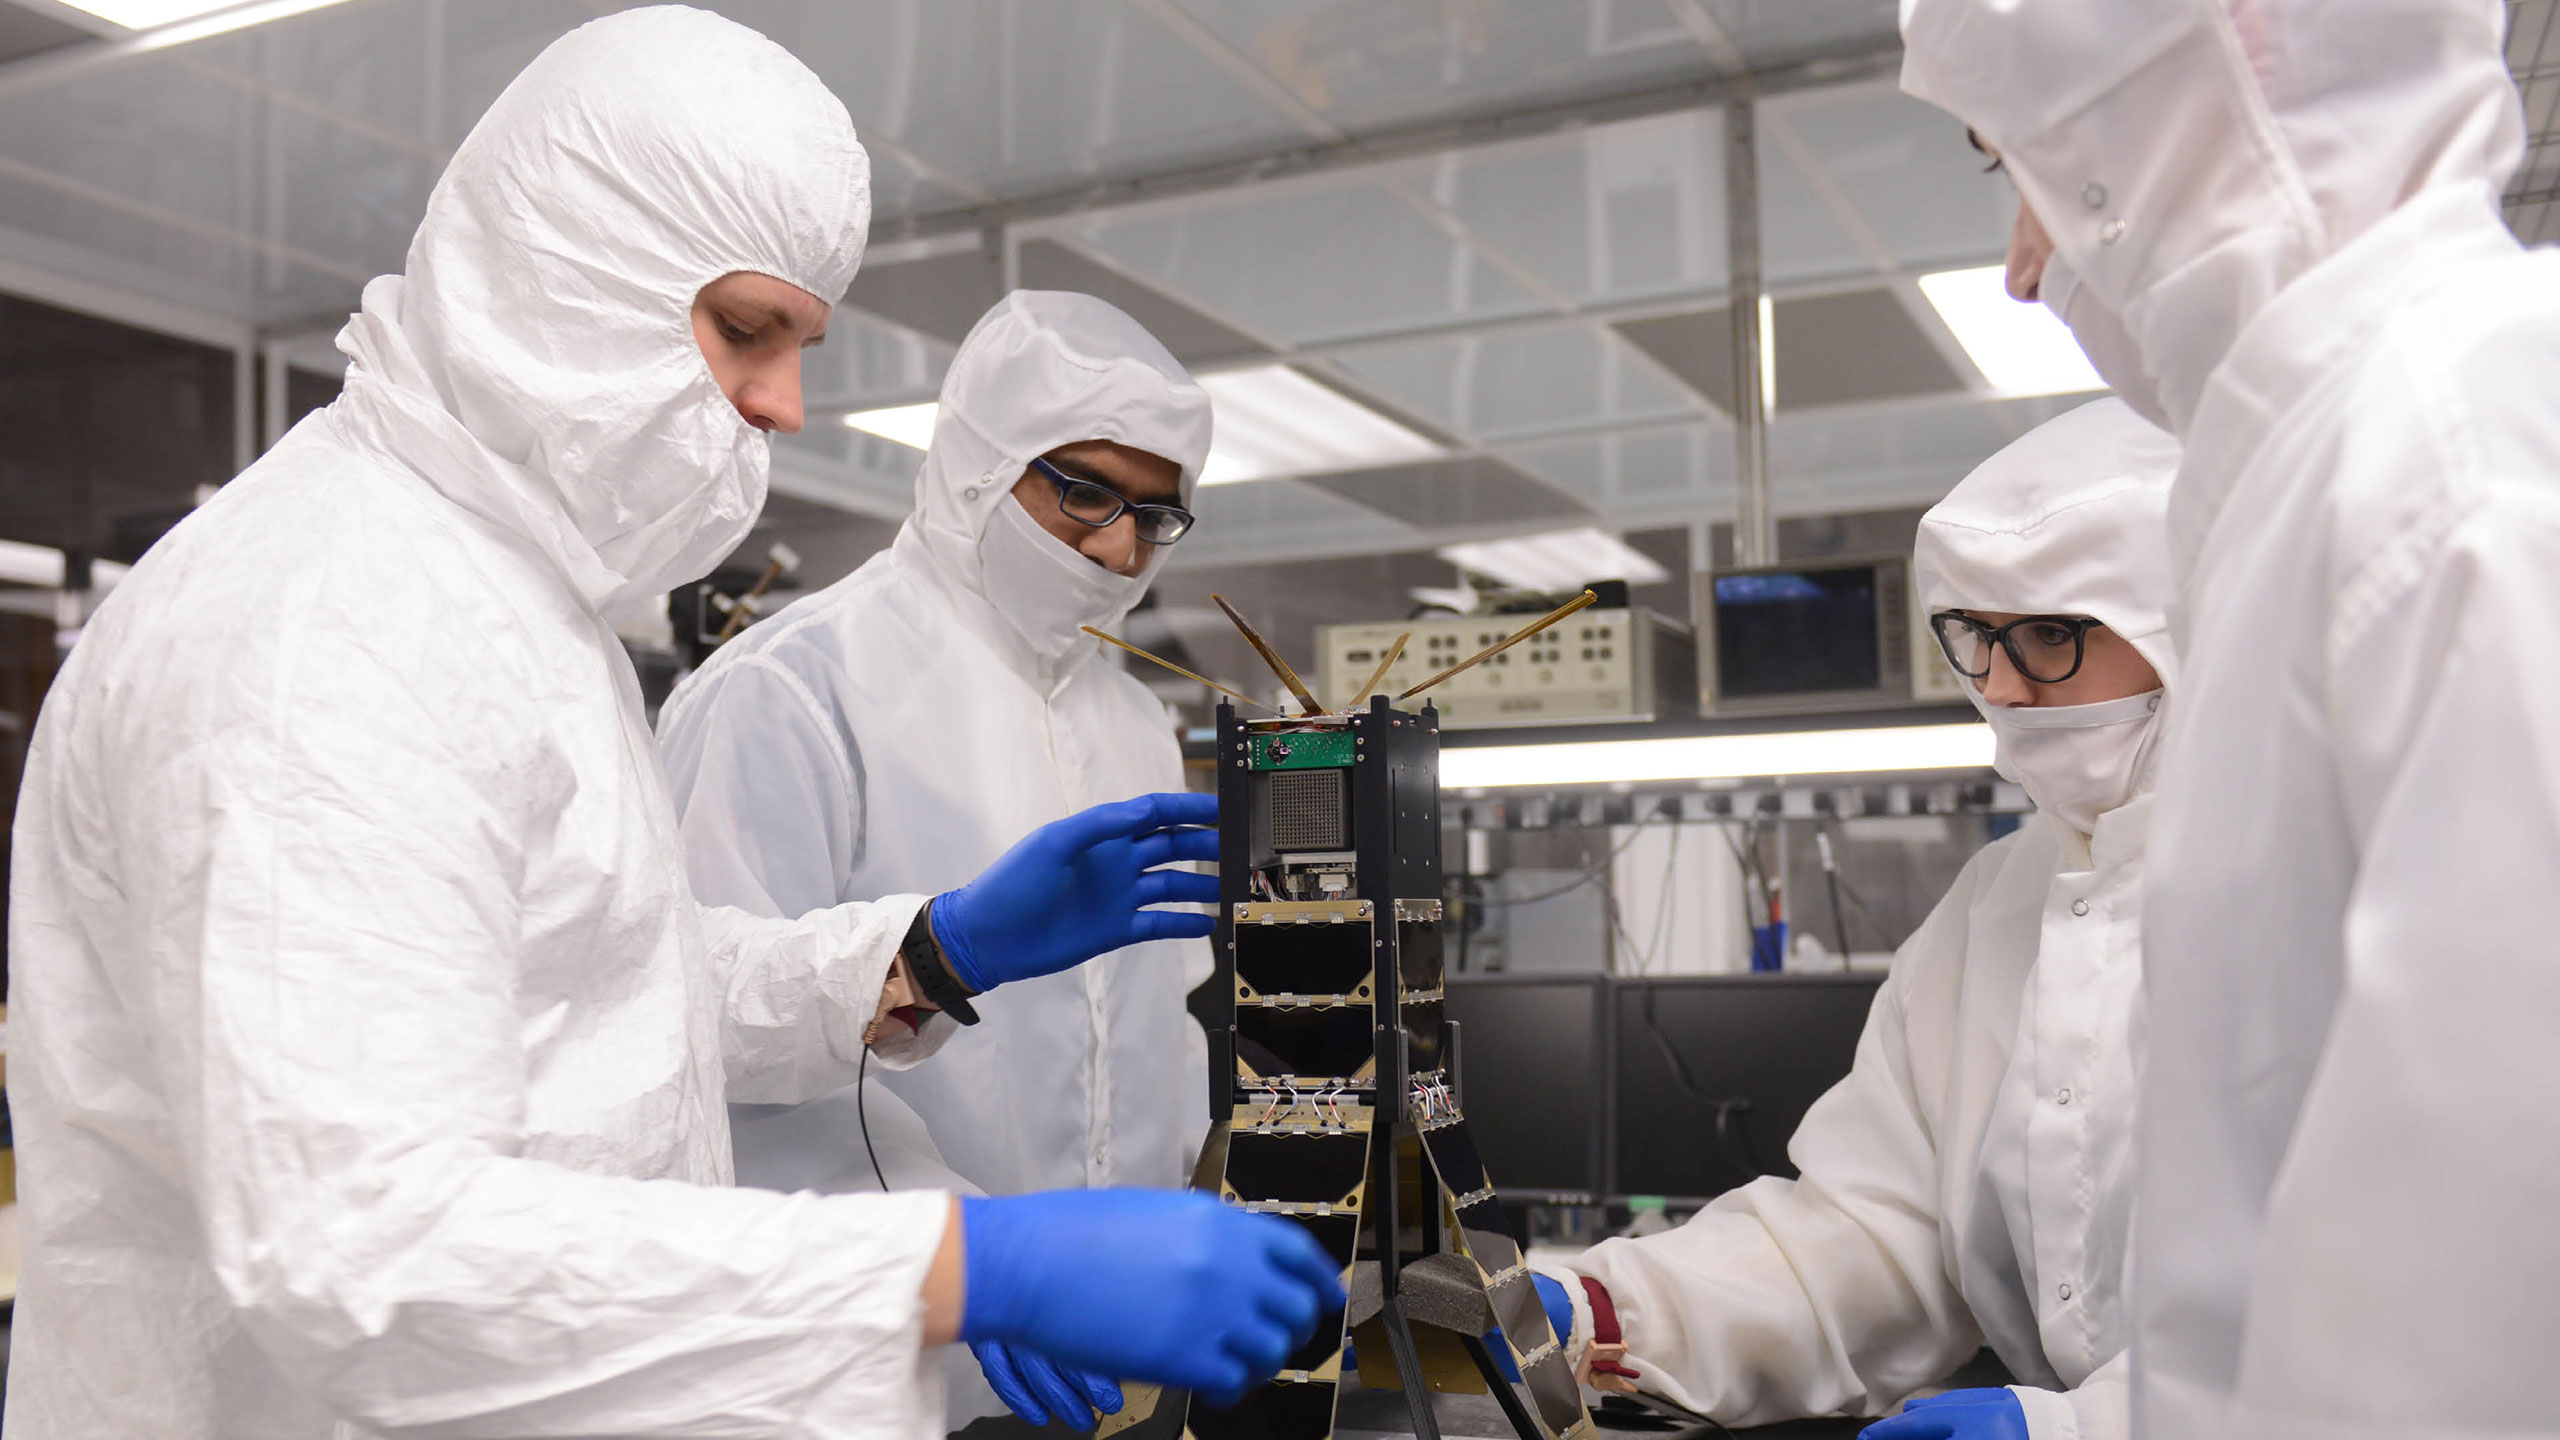 Students building a small satellite in a clean room.